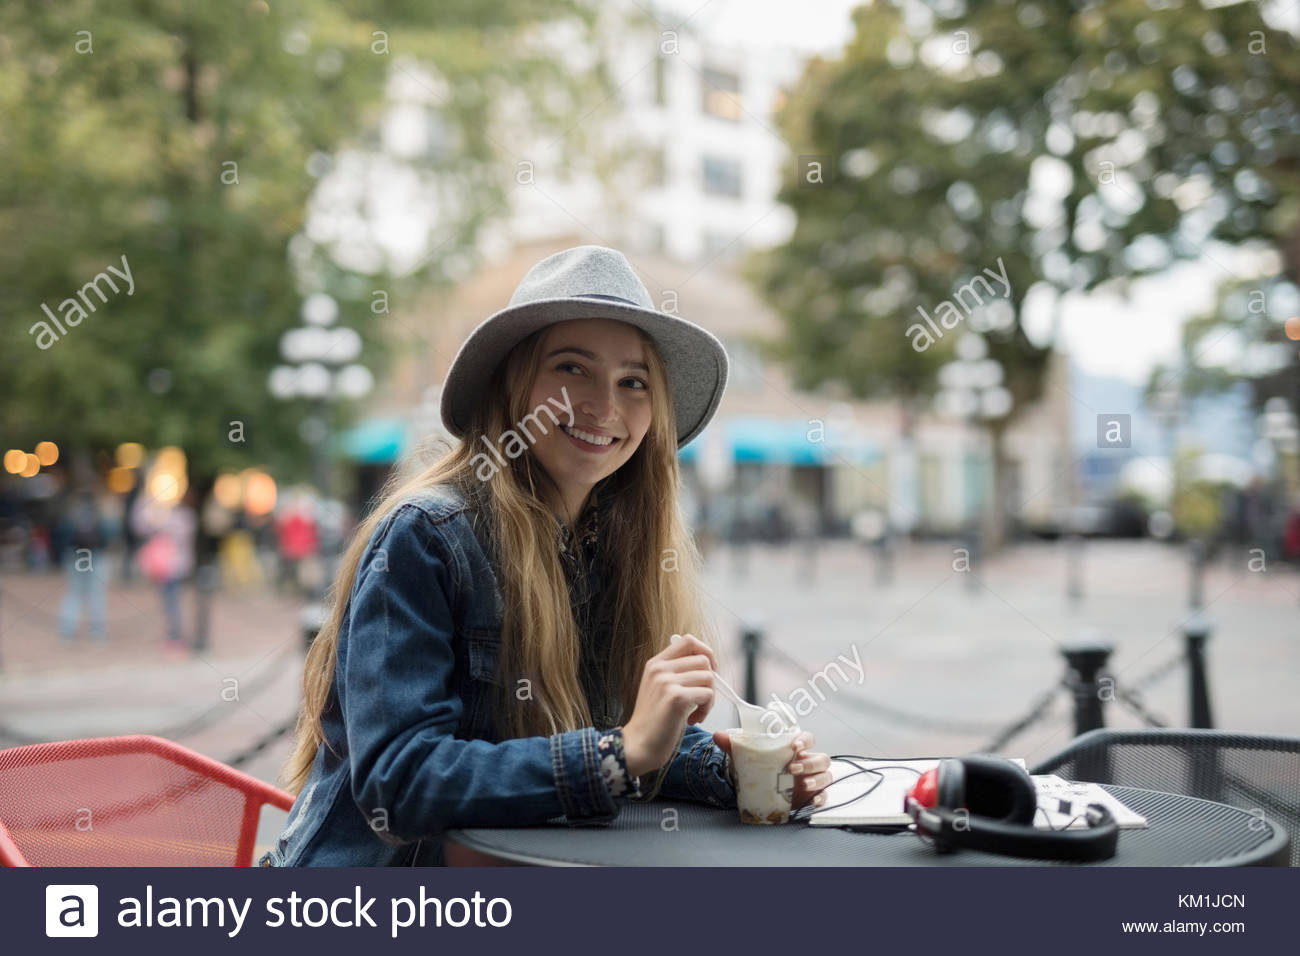 Portrait smiling young woman eating ice cream at urban sidewalk cafe Stock Photo